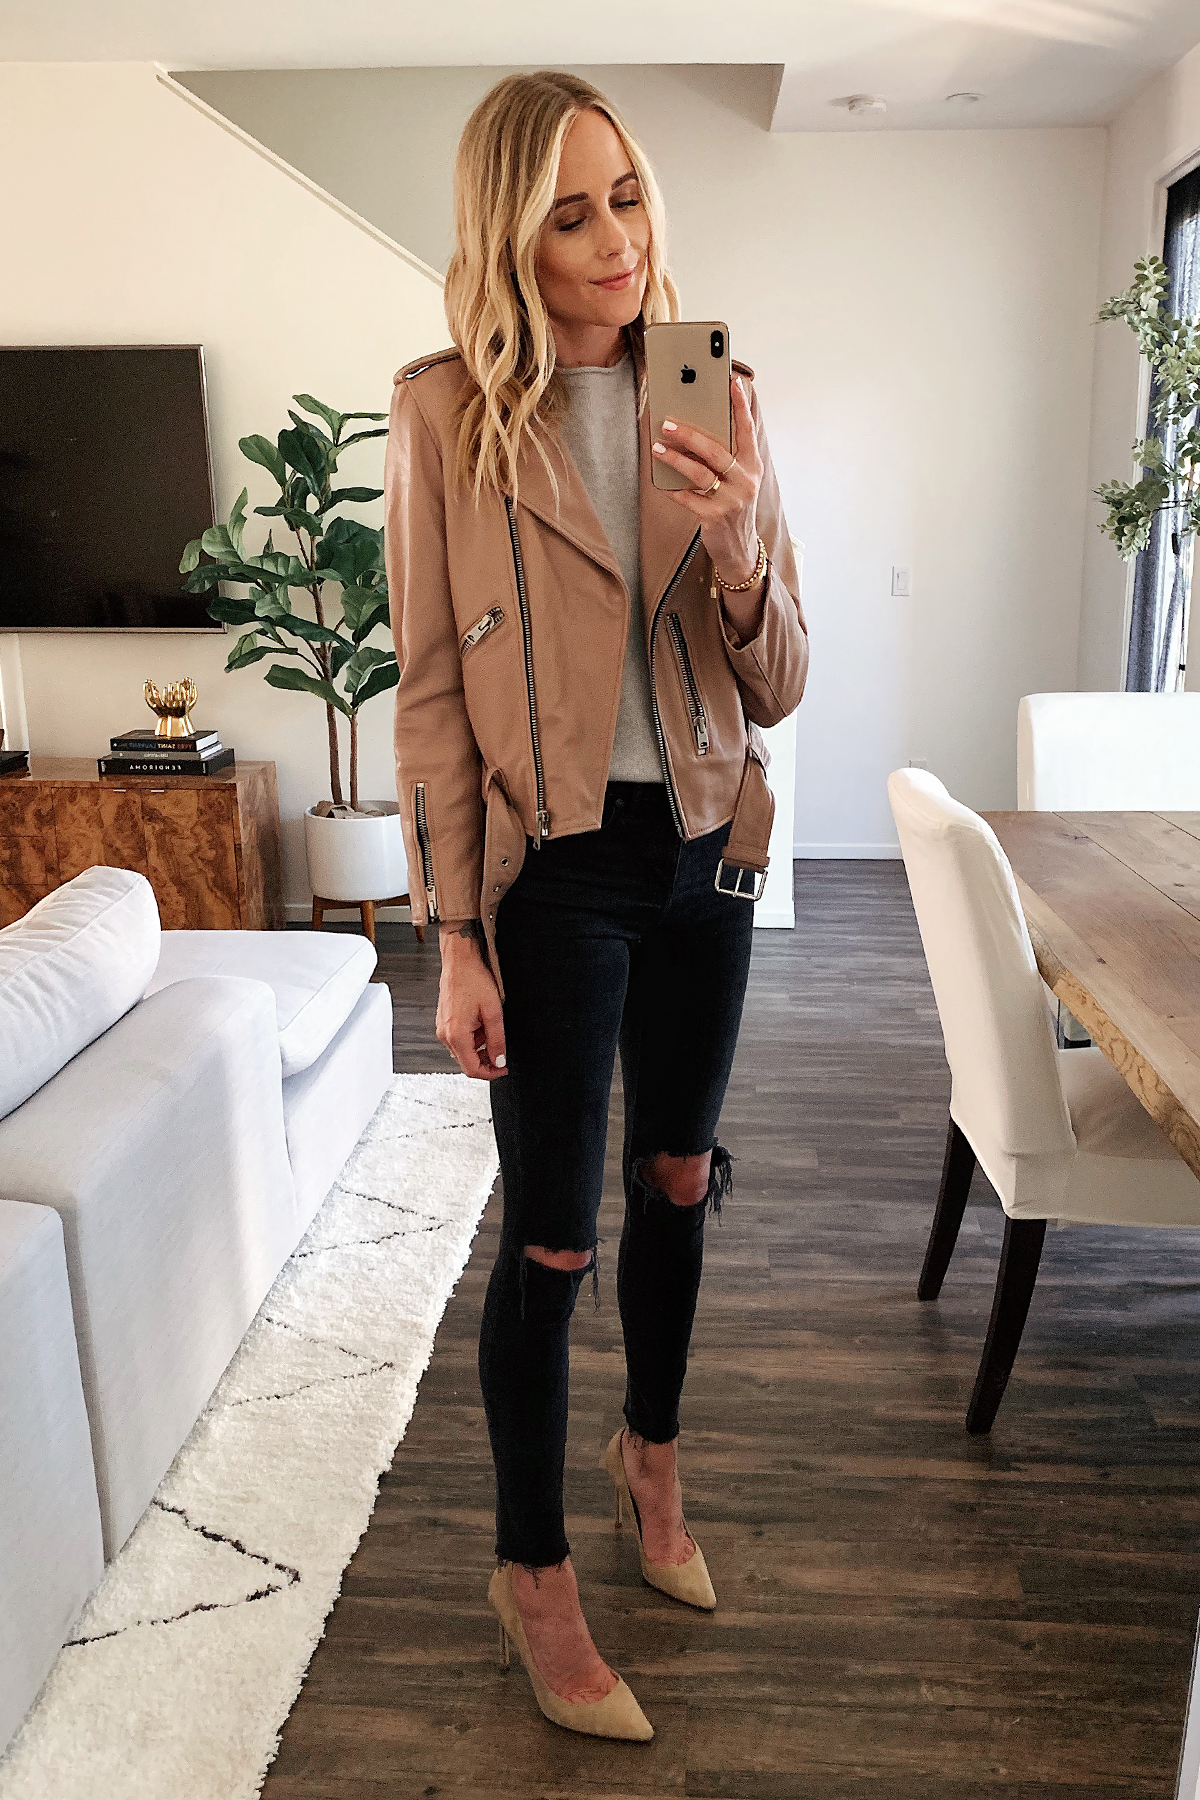 Fashion Jackson Wearing Allsaints Blush Leather Moto Jacket Grey Sweater Black Ripped Skinny Jeans Nude Pumps